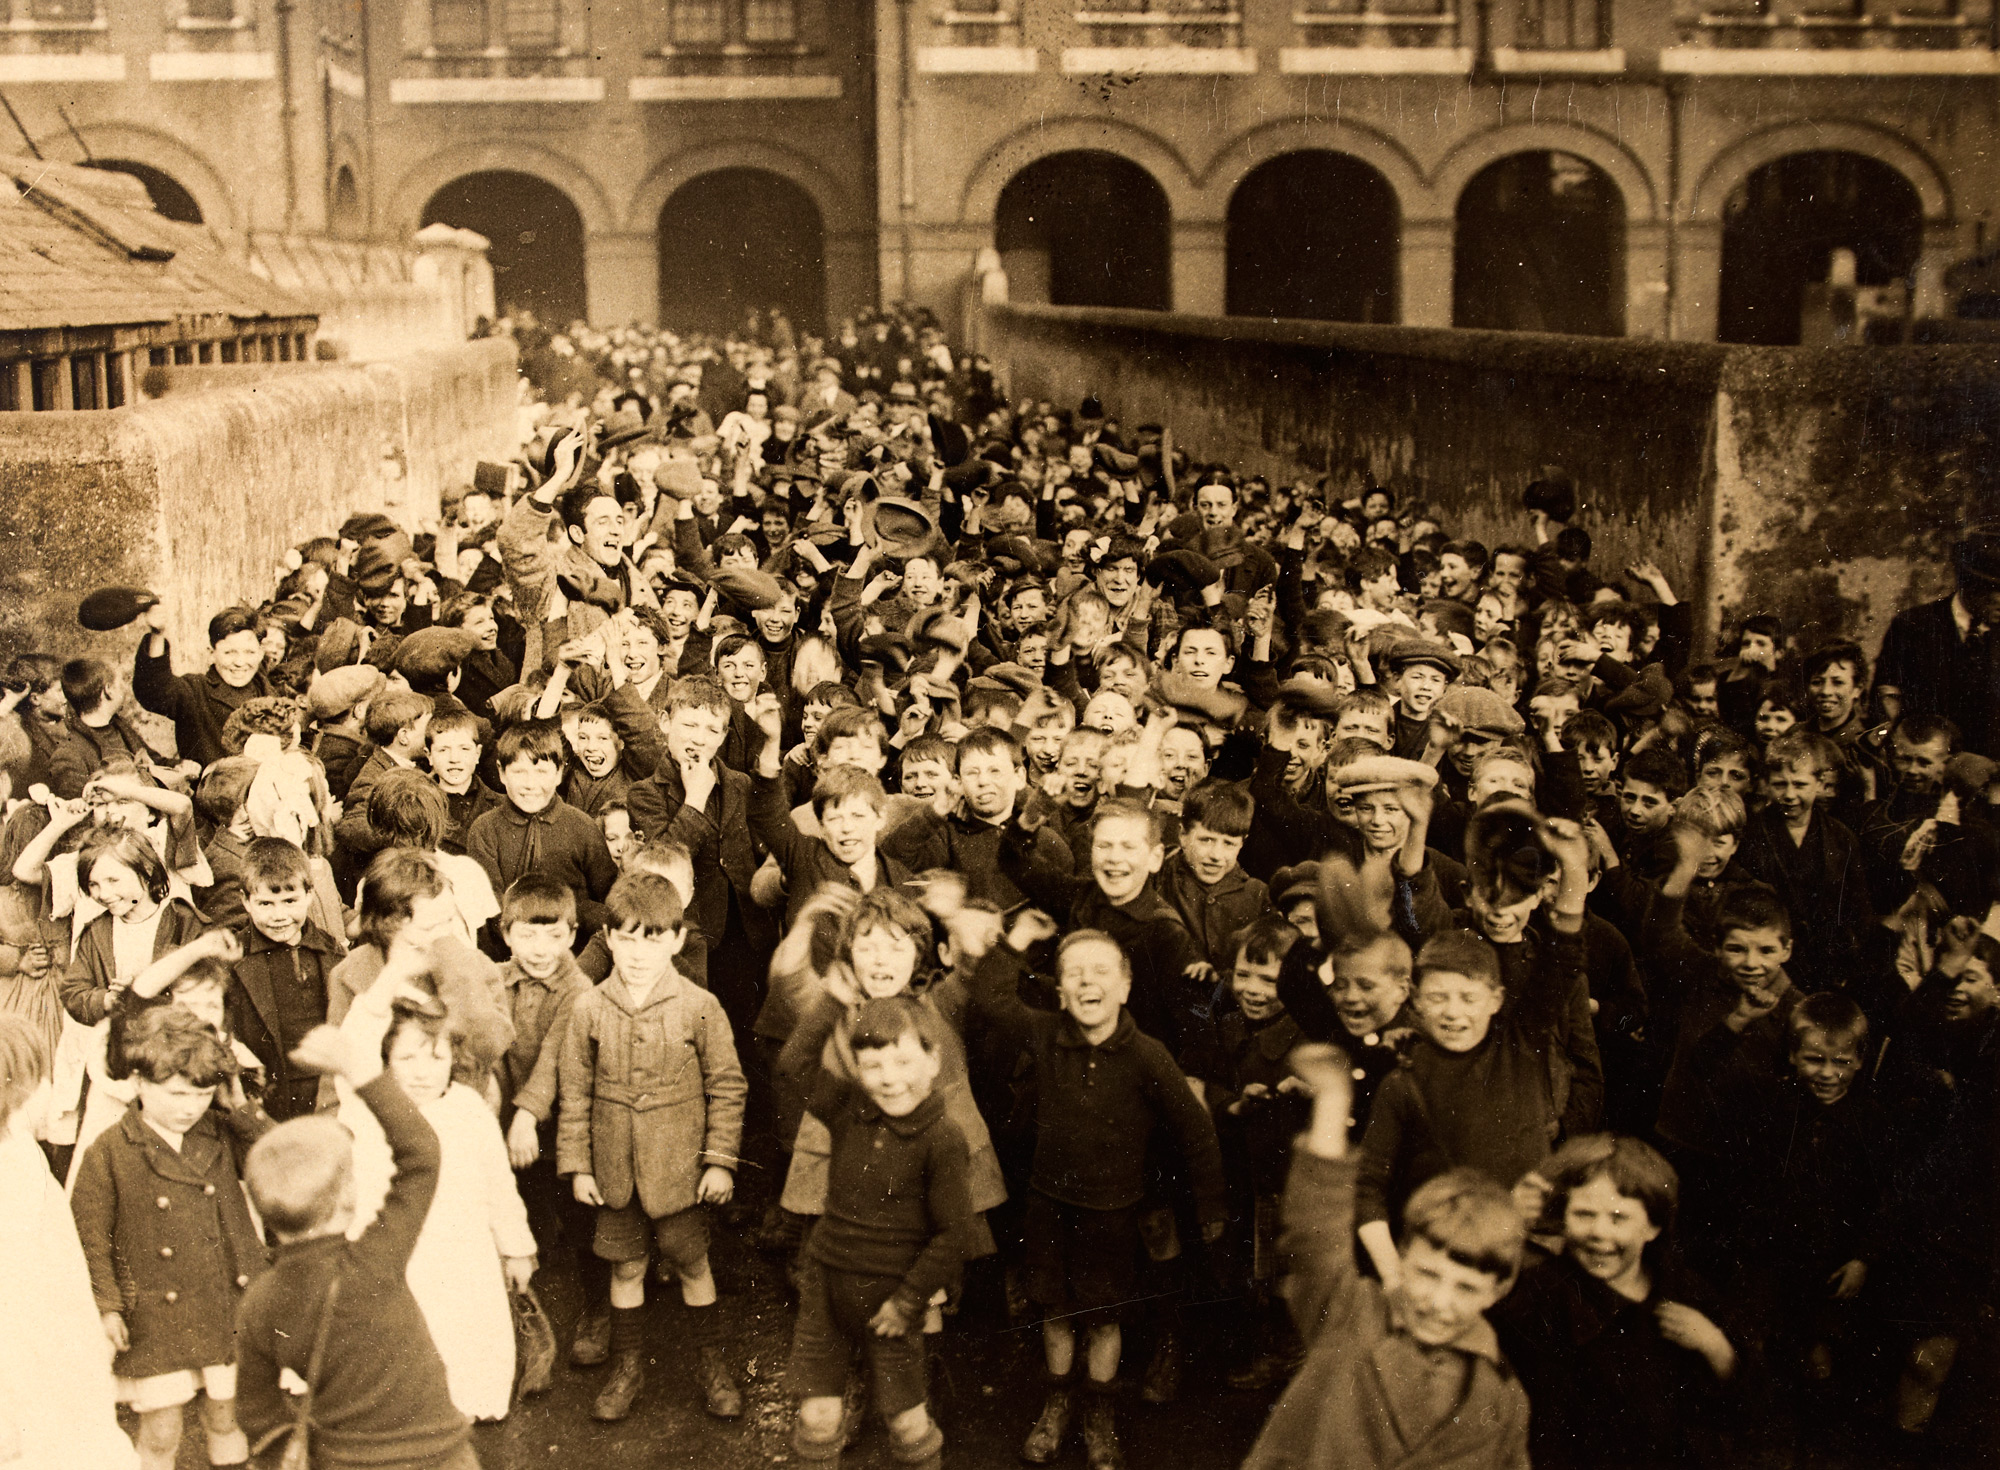 An old photo of a large group of children celebrating